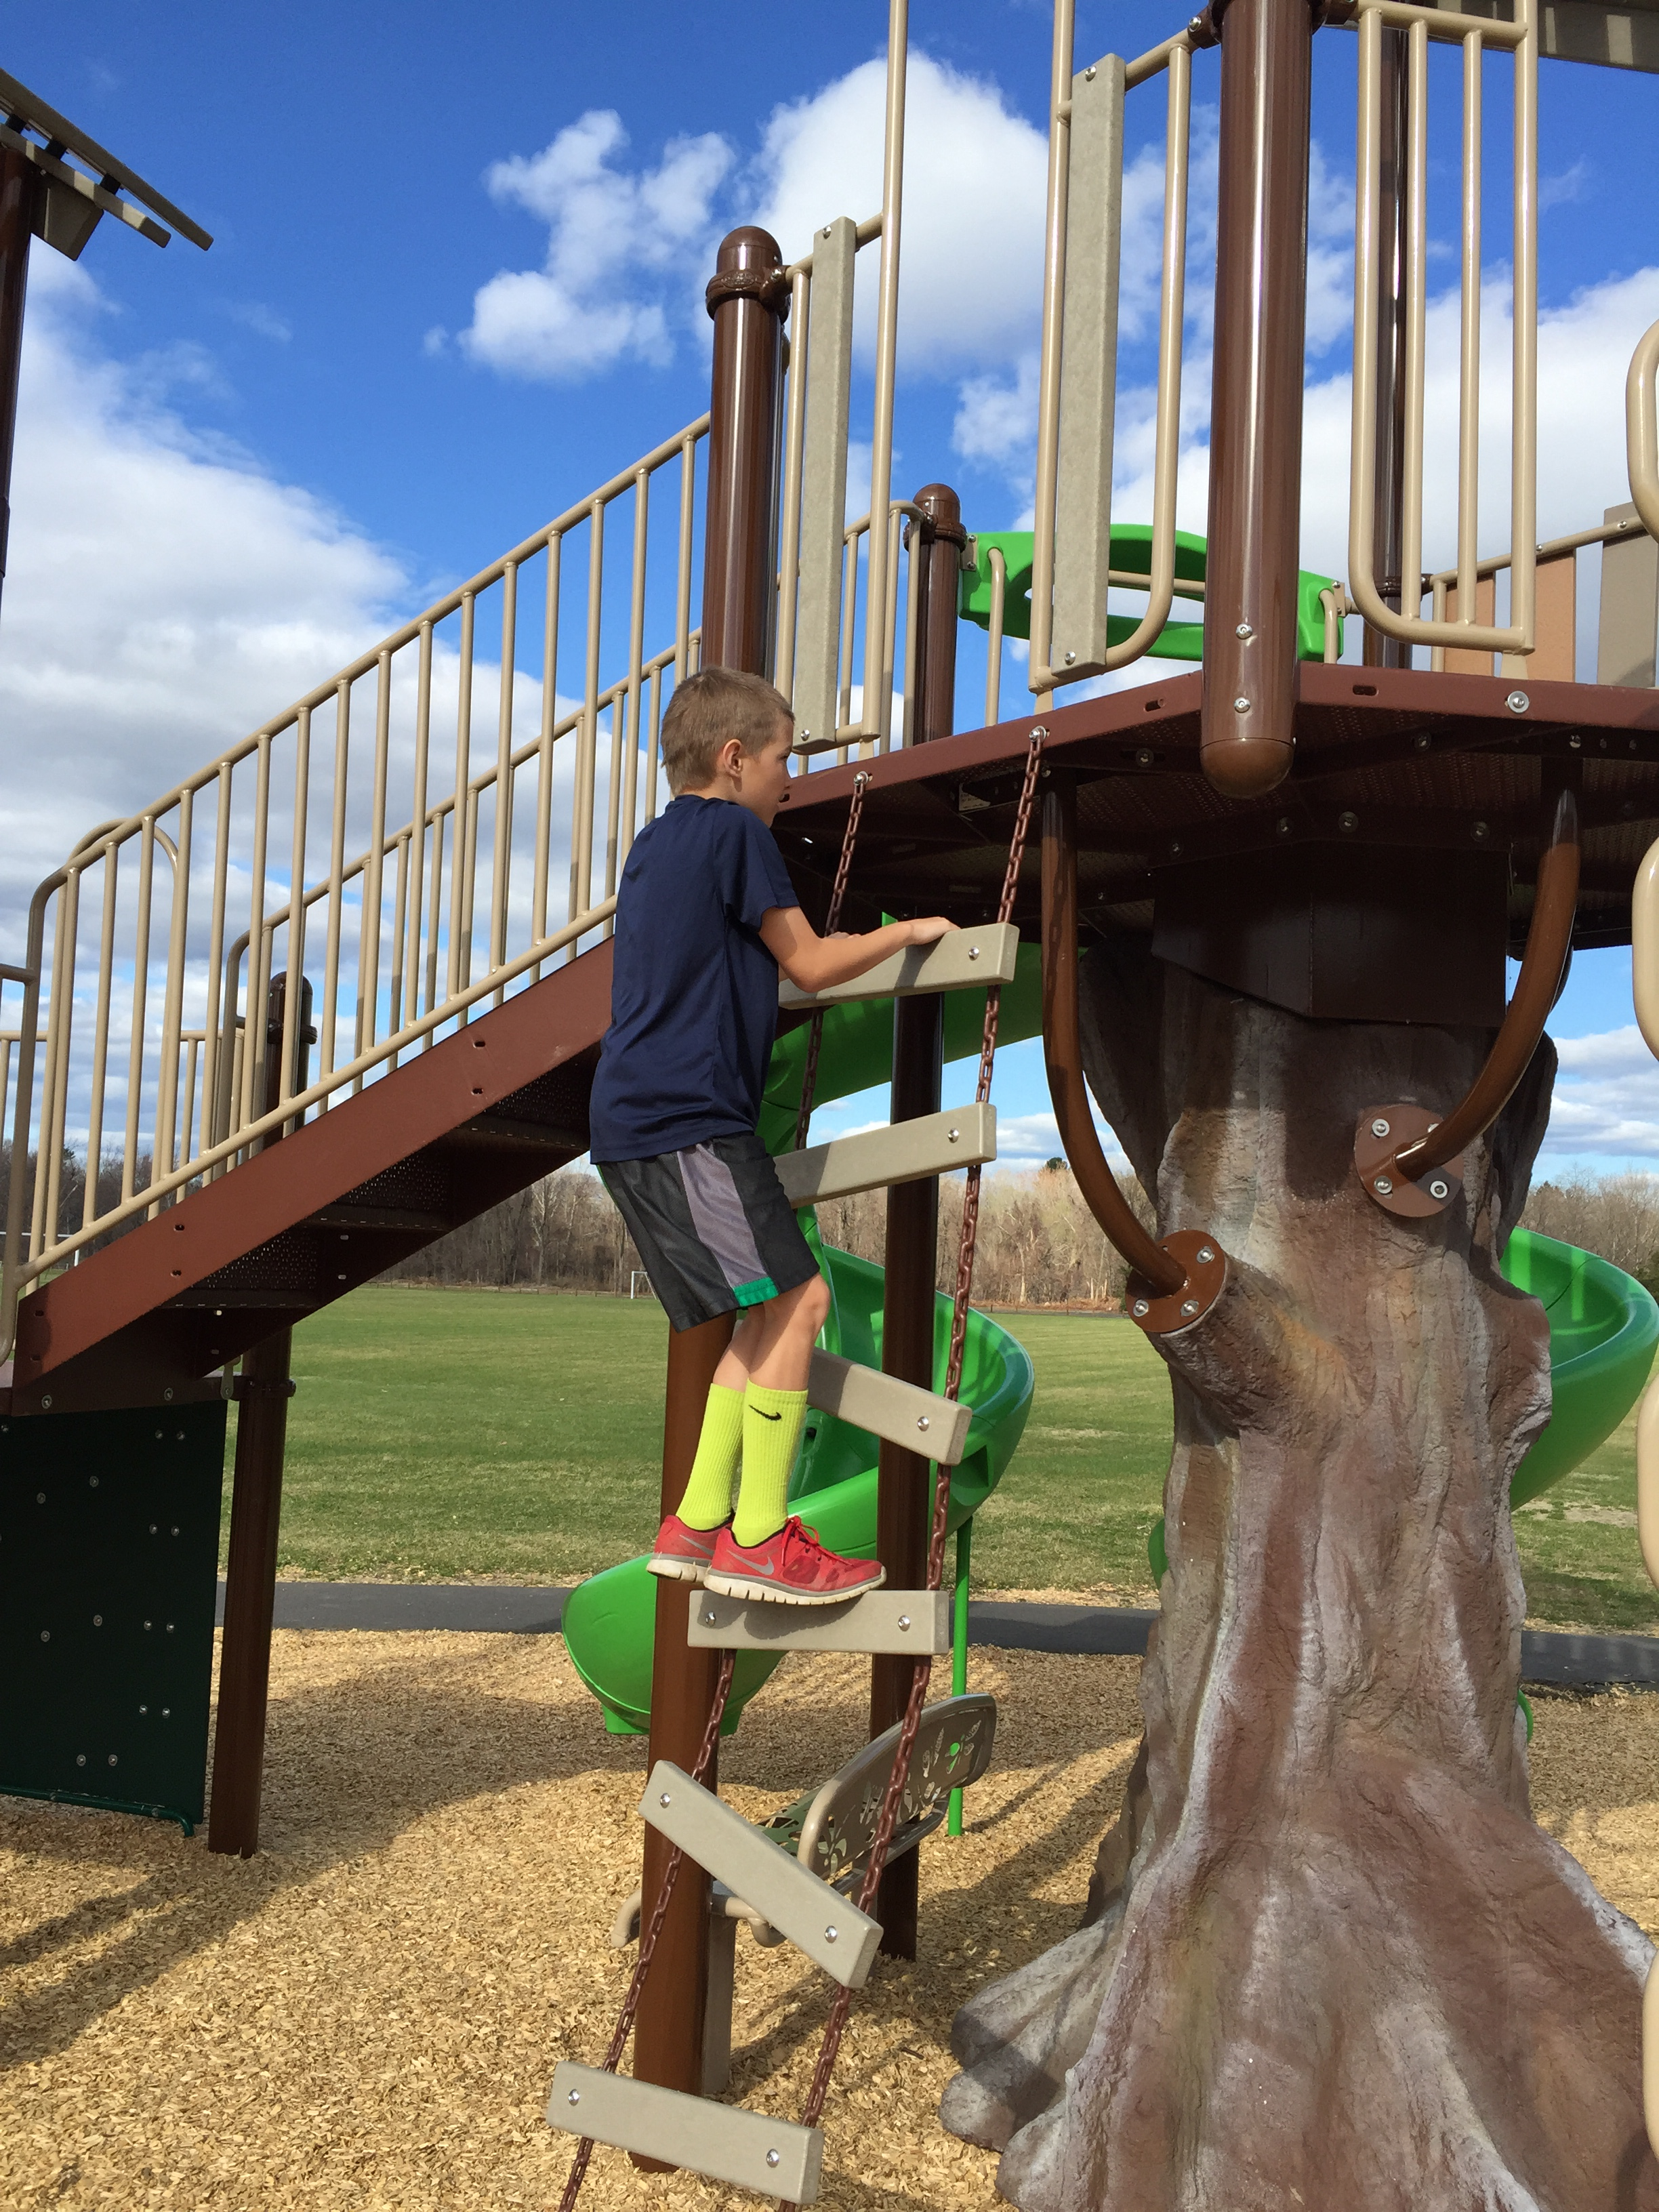 Florence Recreation Fields  play structure